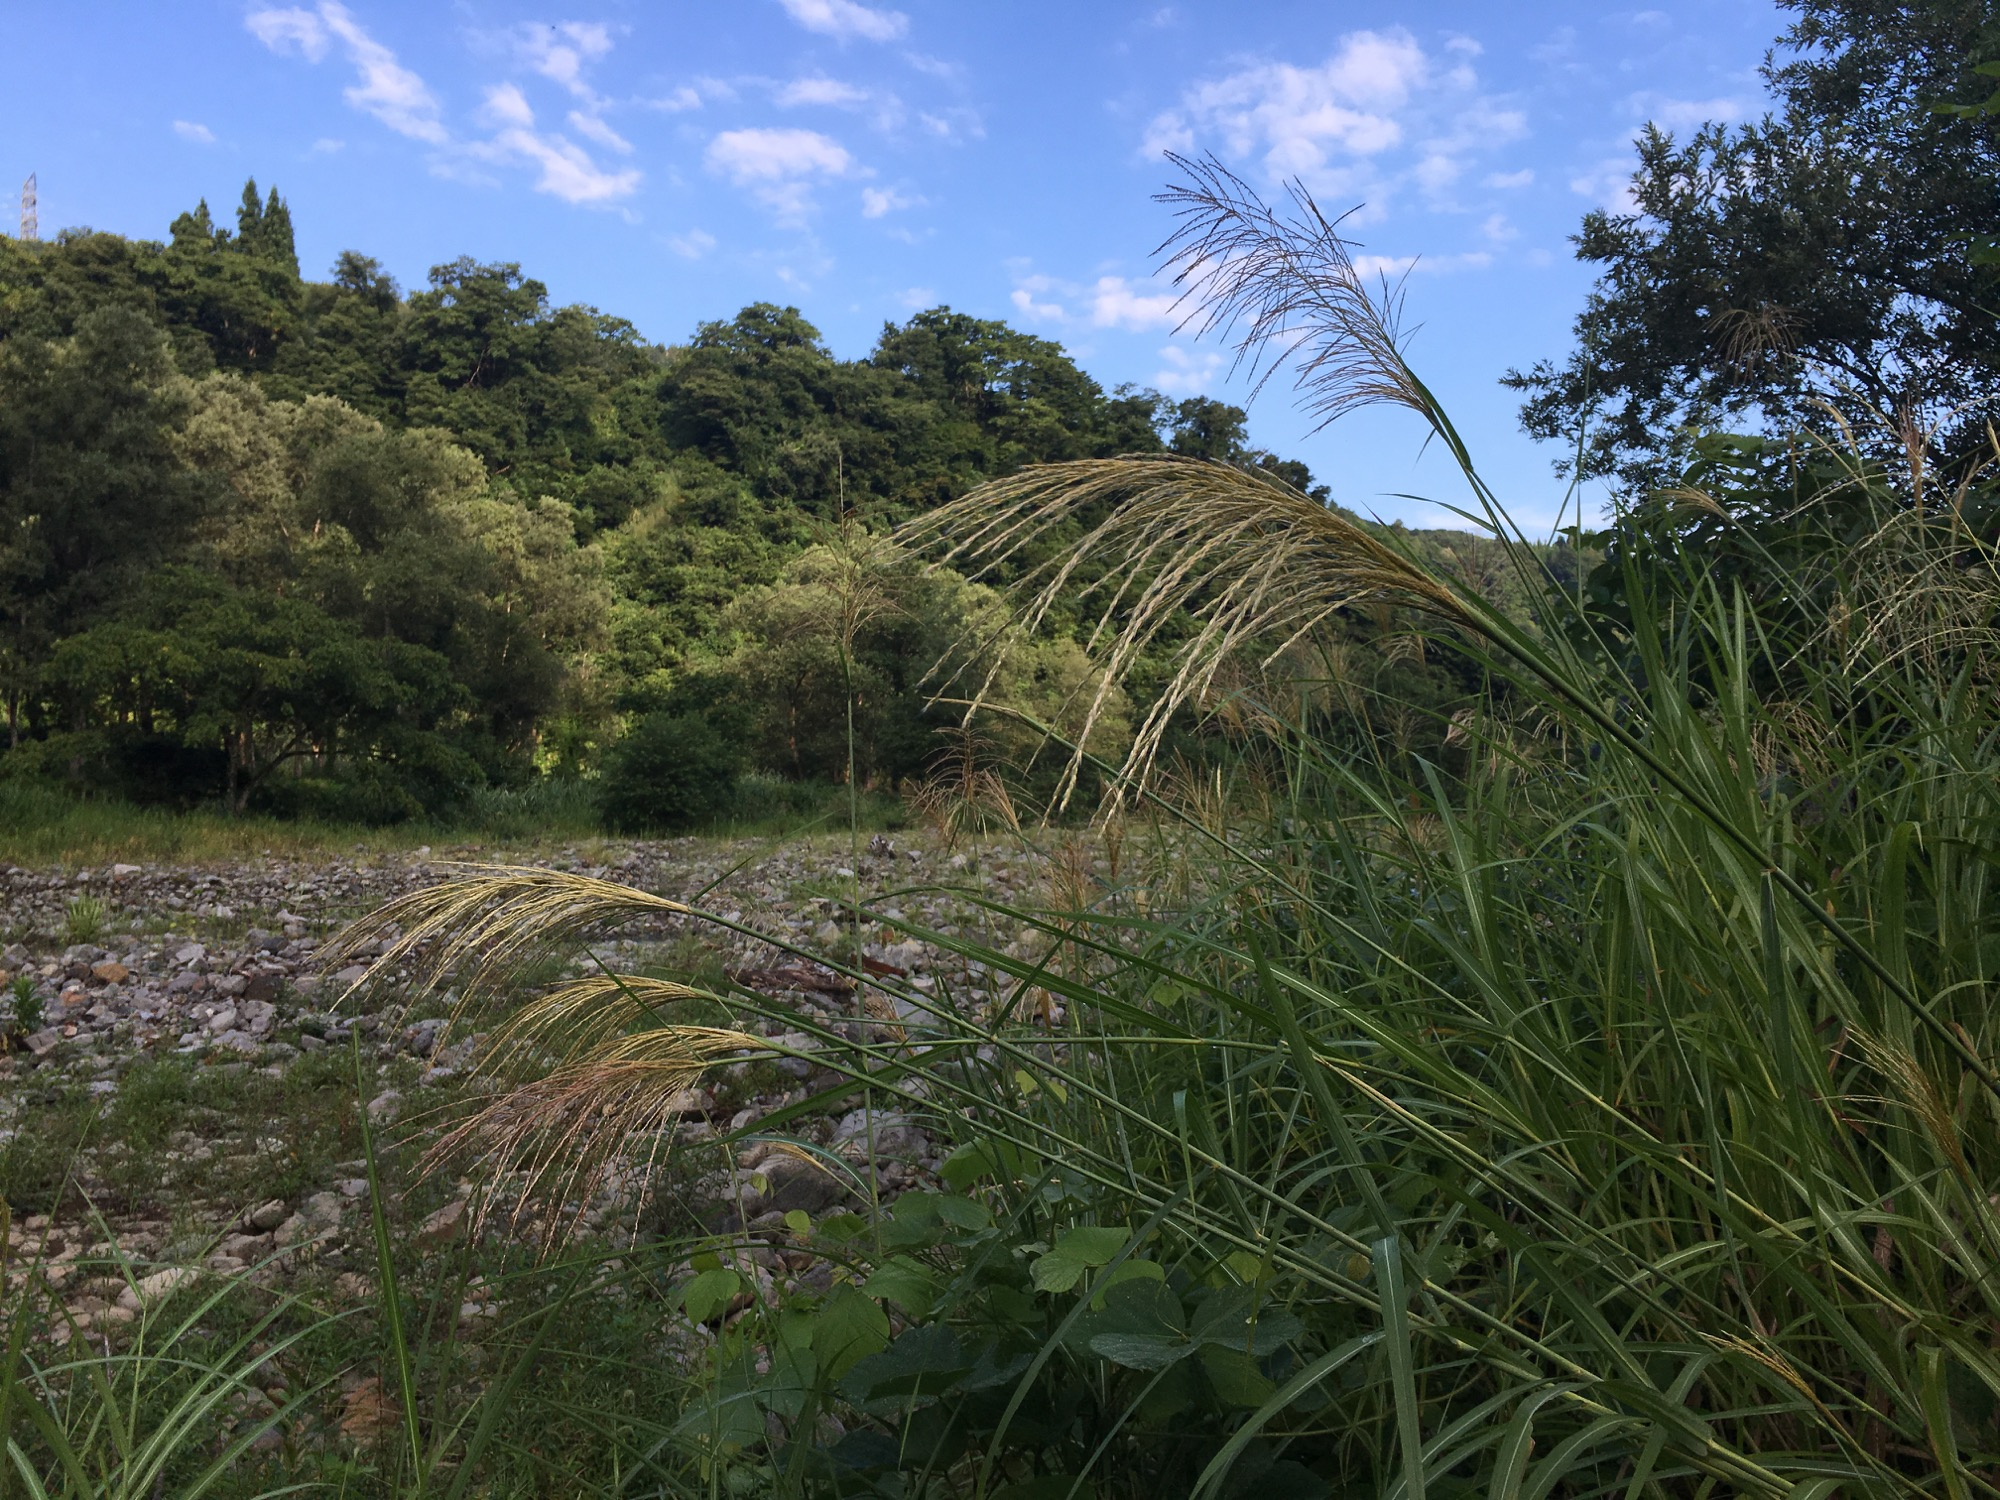 Susuki grass in all their glory